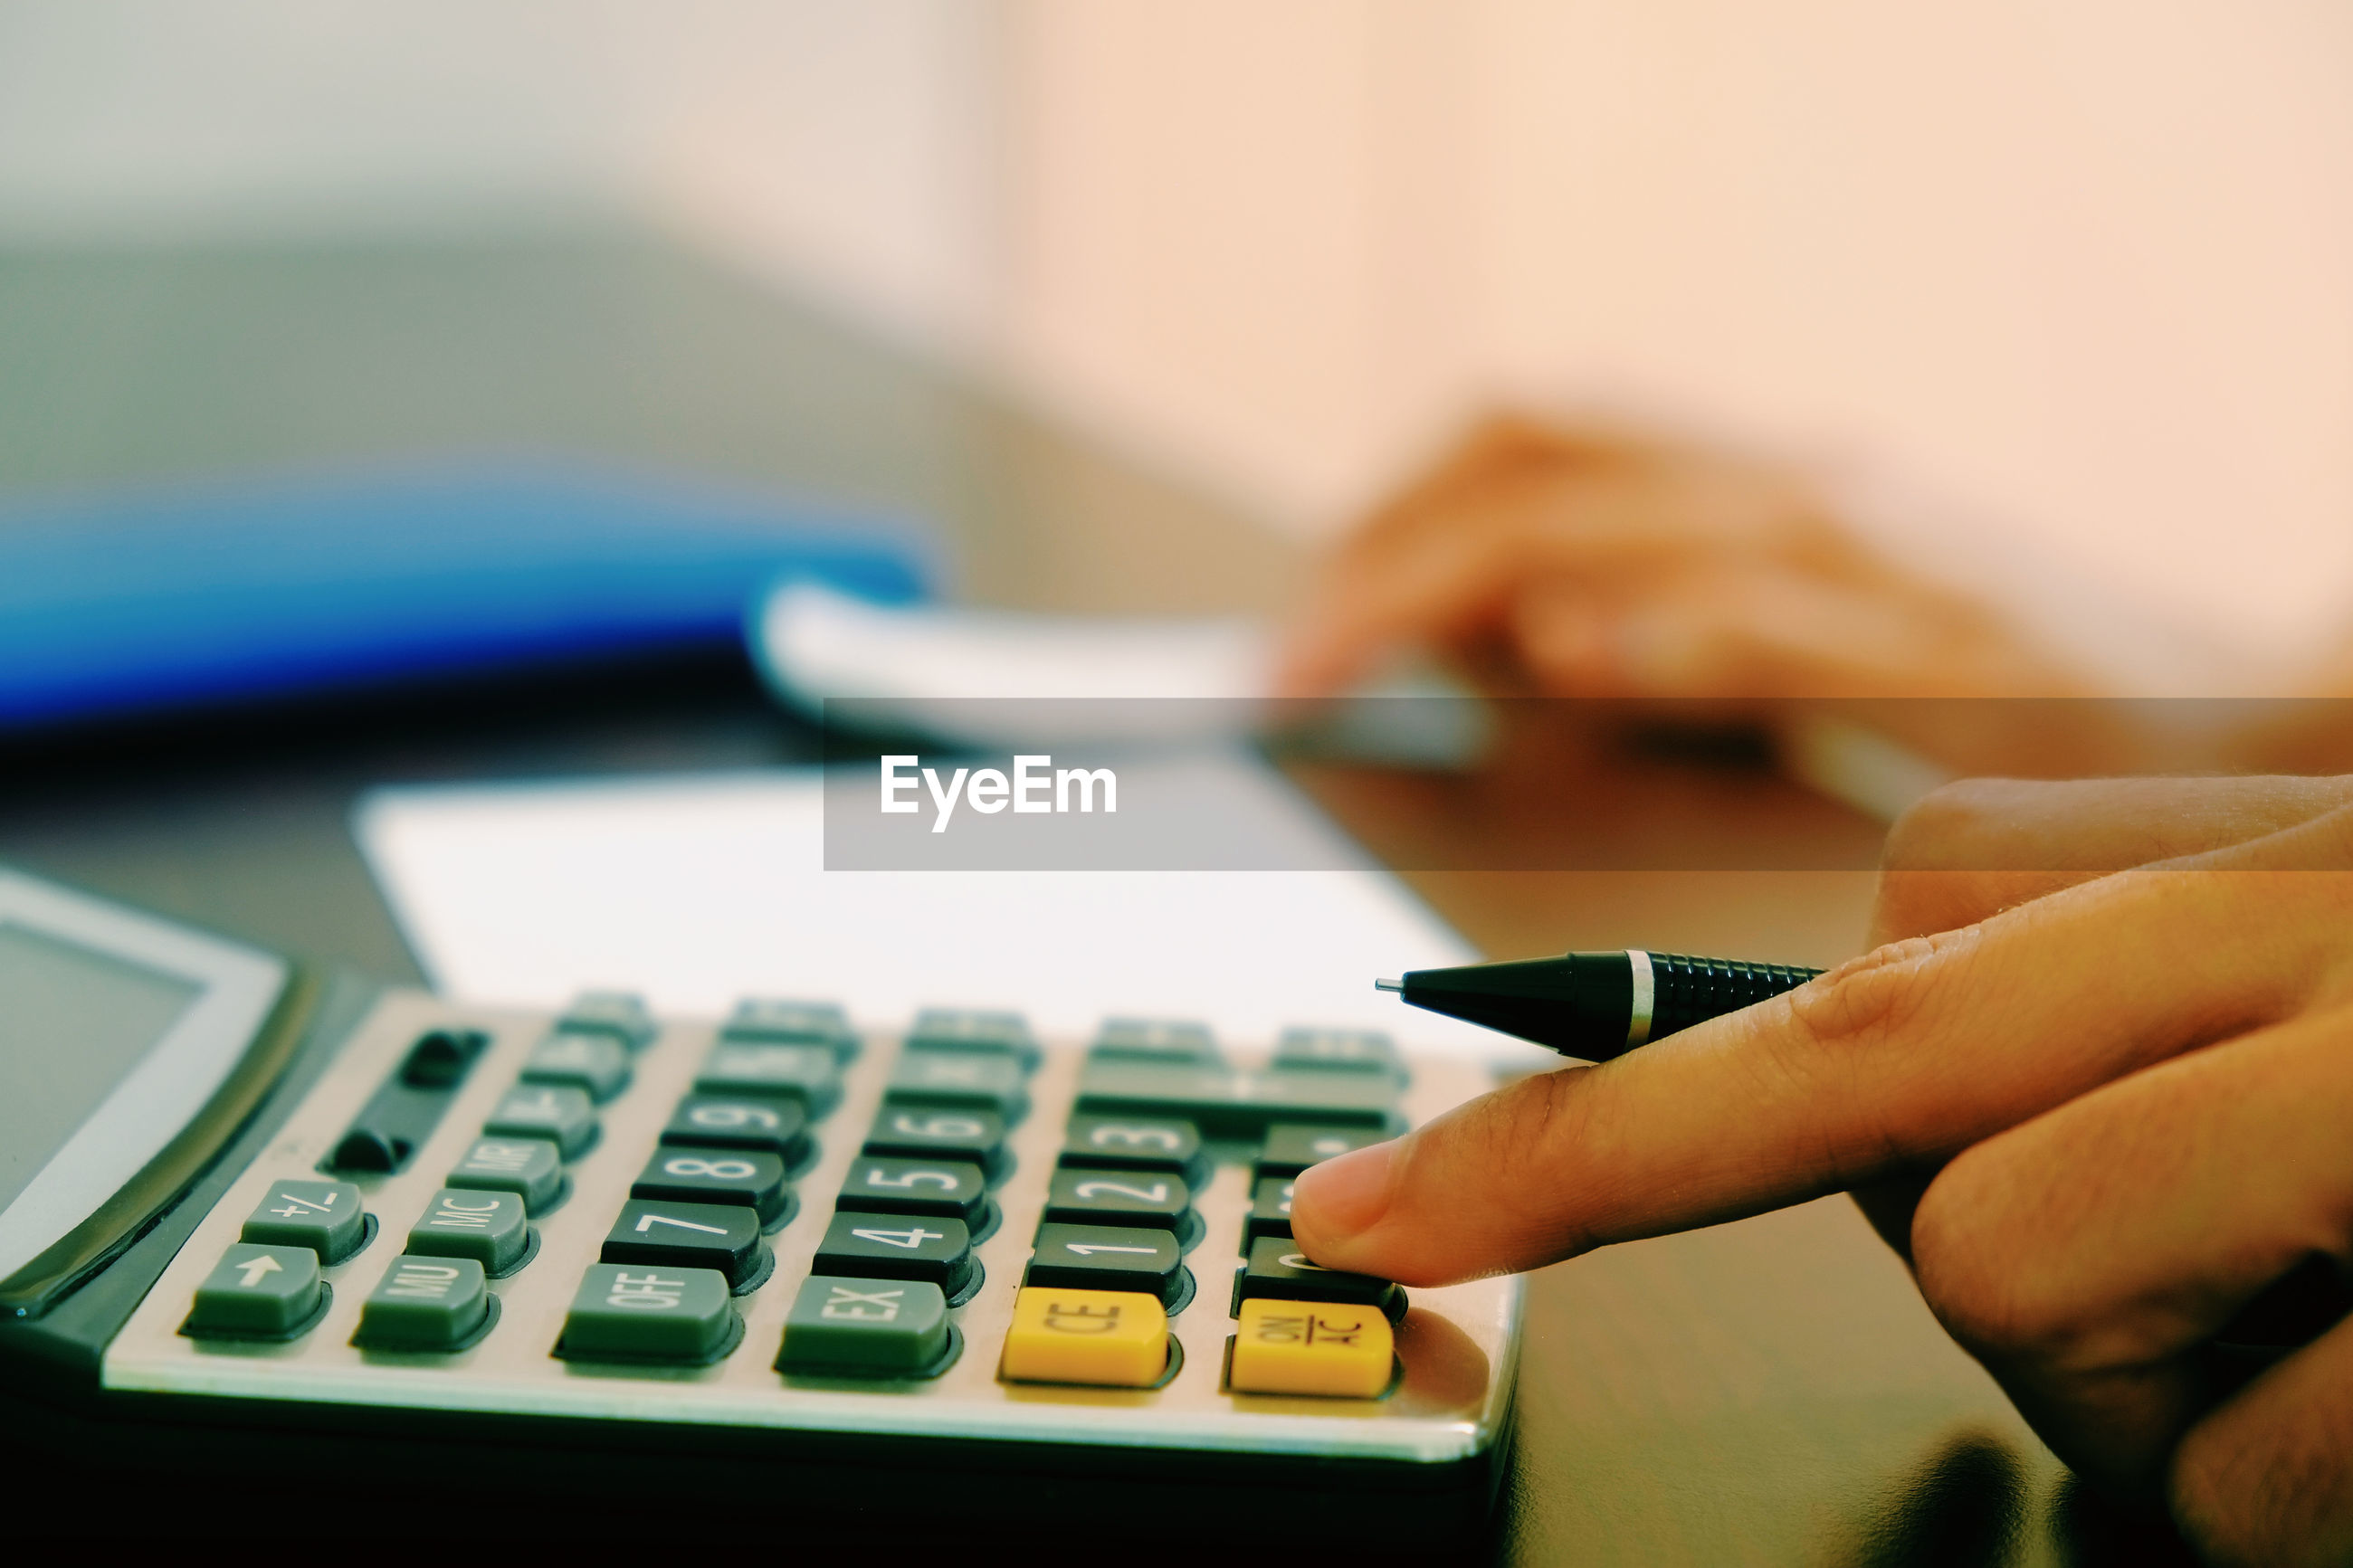 Close-up of hand using calculator on table